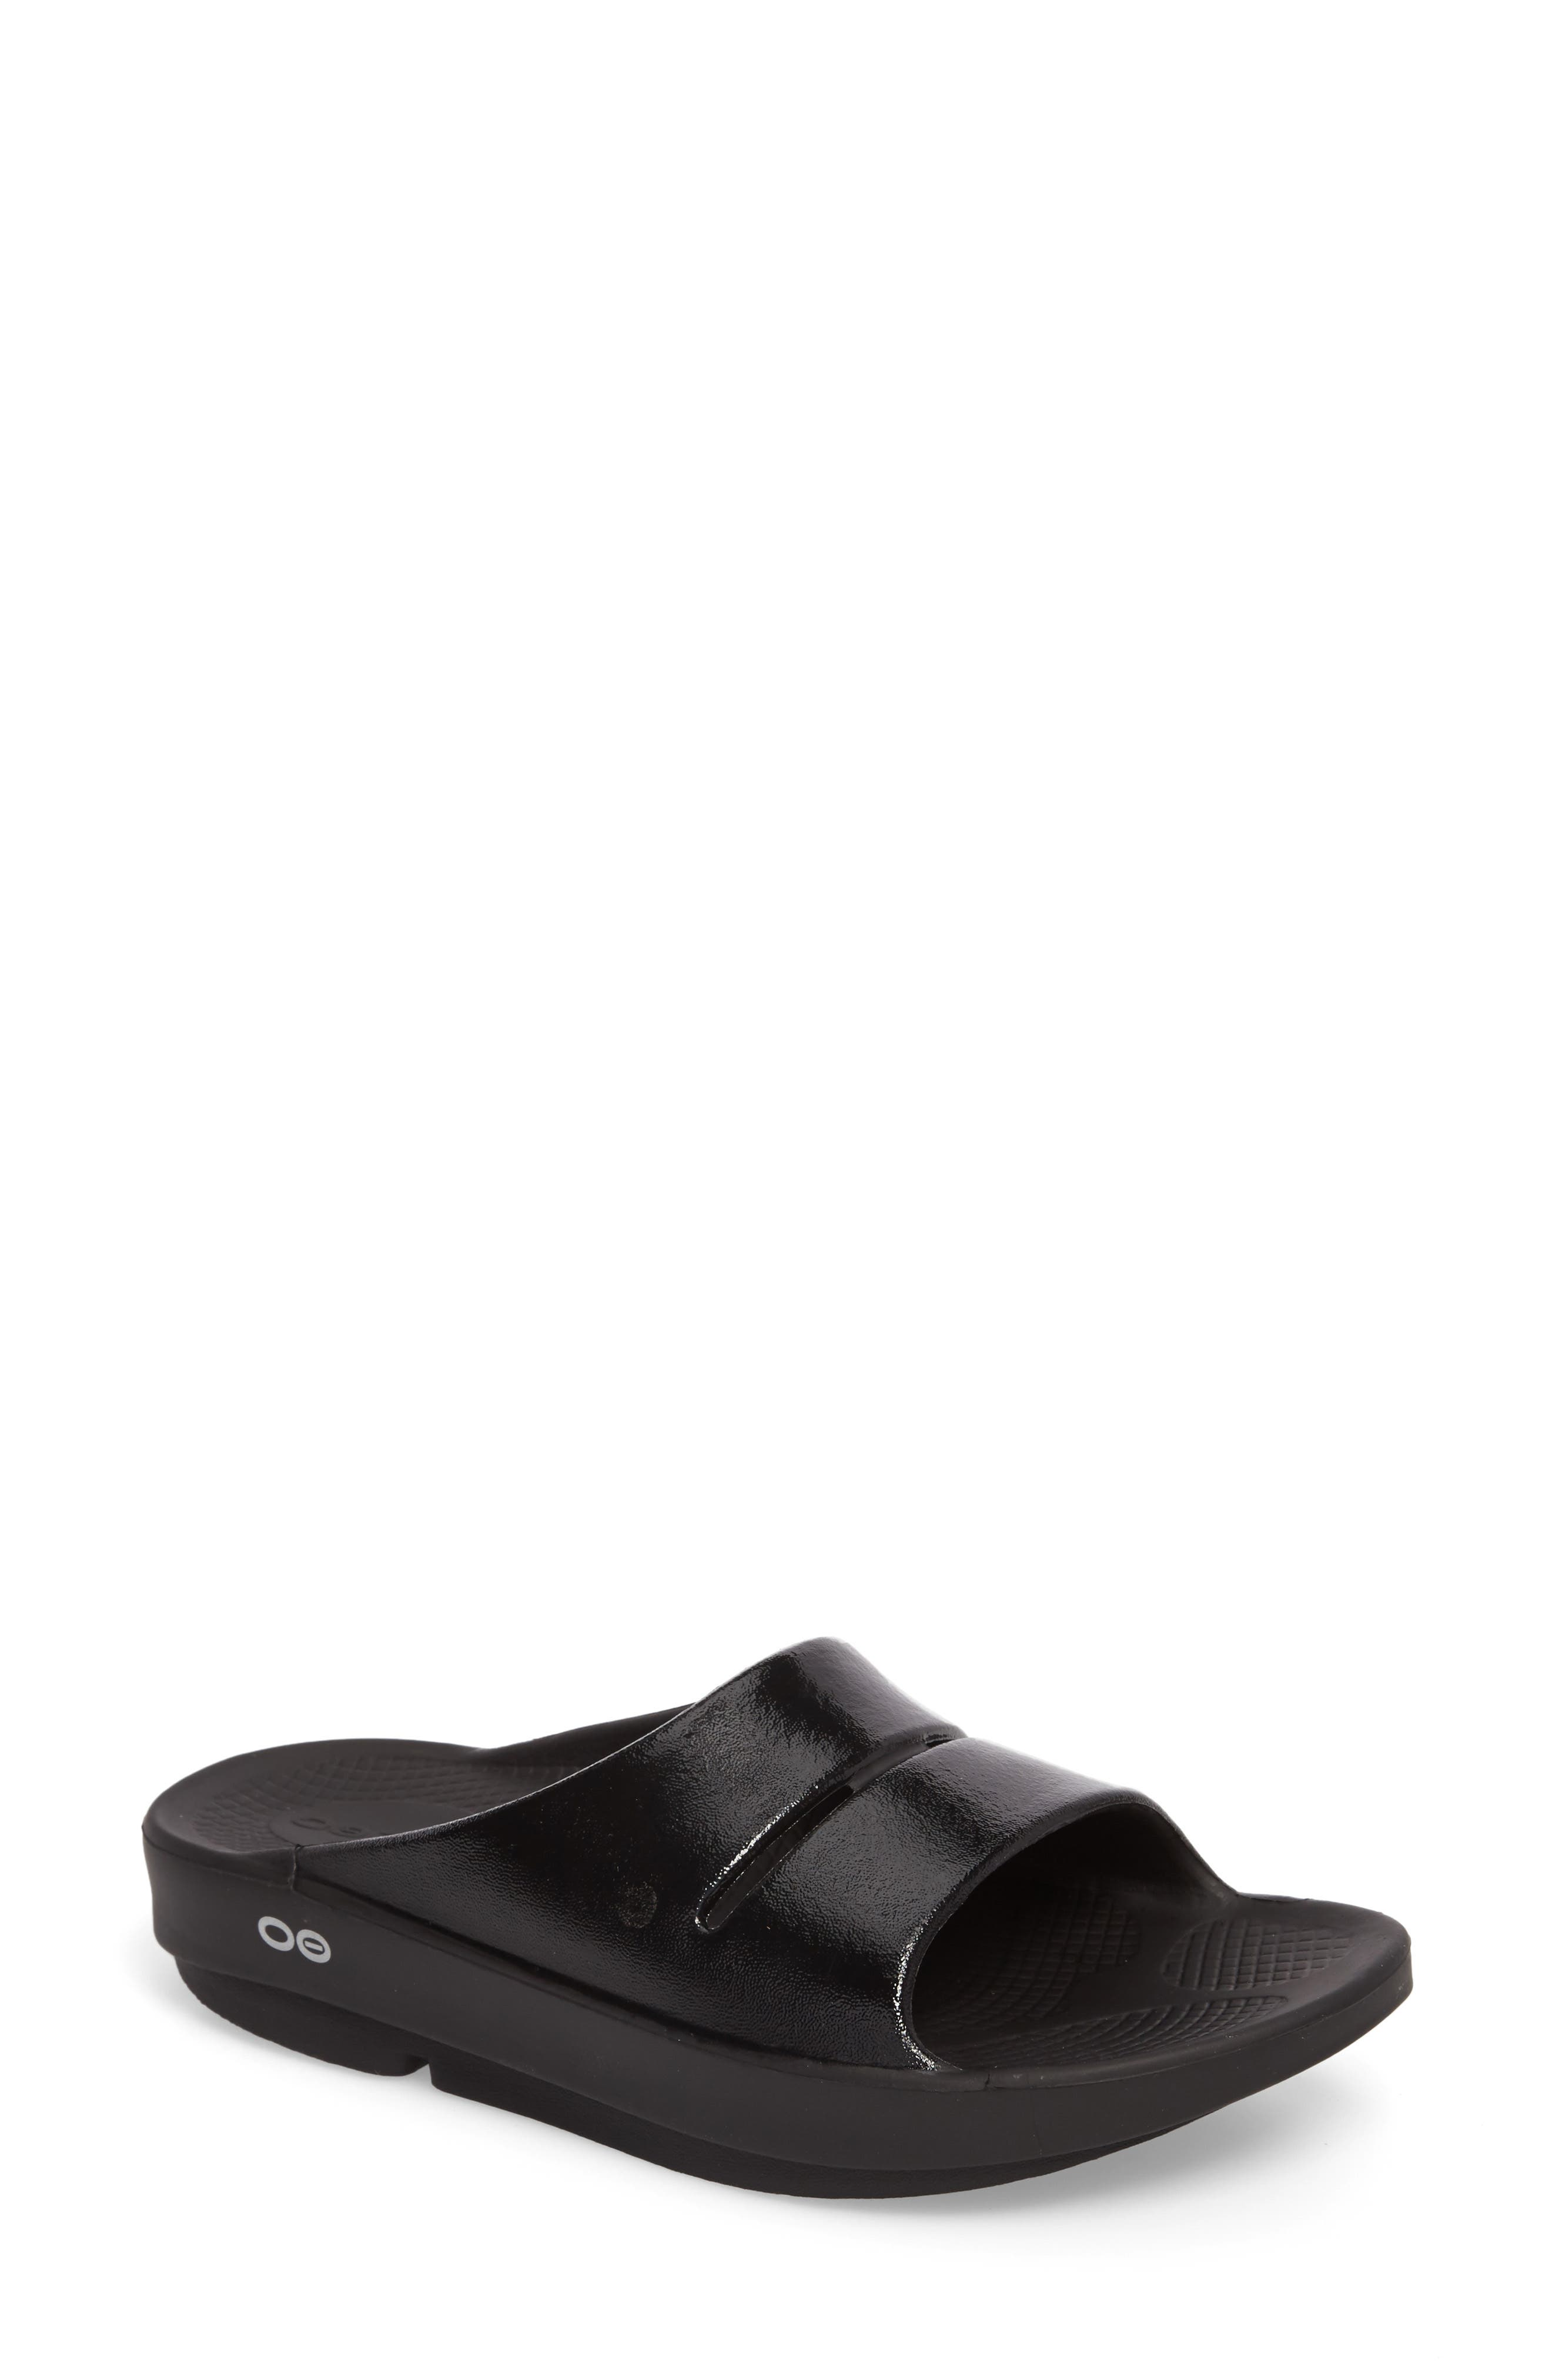 OOahh Luxe Slide Sandal,                             Main thumbnail 1, color,                             001